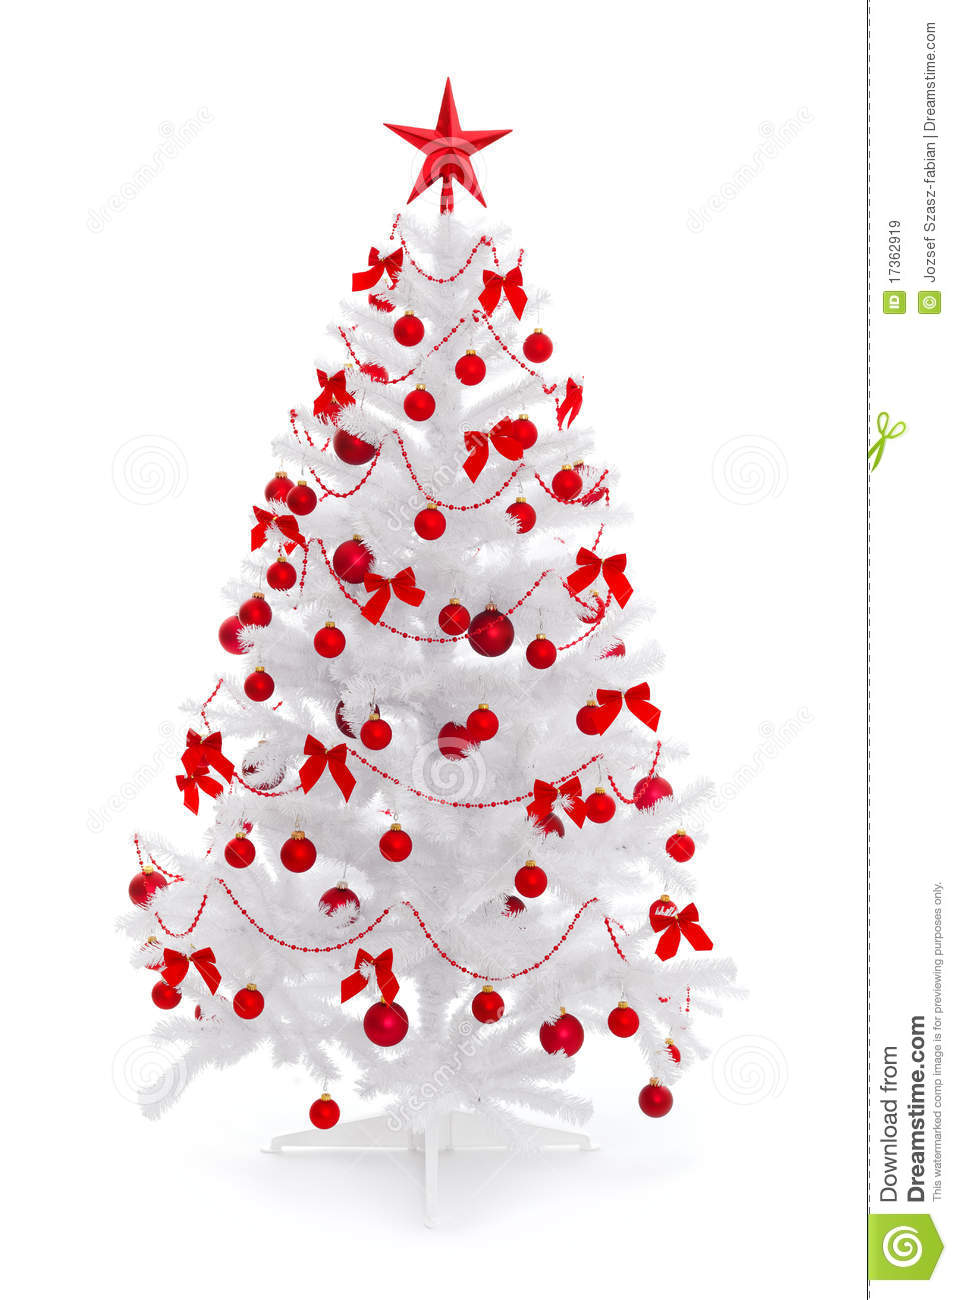 download white christmas tree with red decoration stock image image of traditional holiday